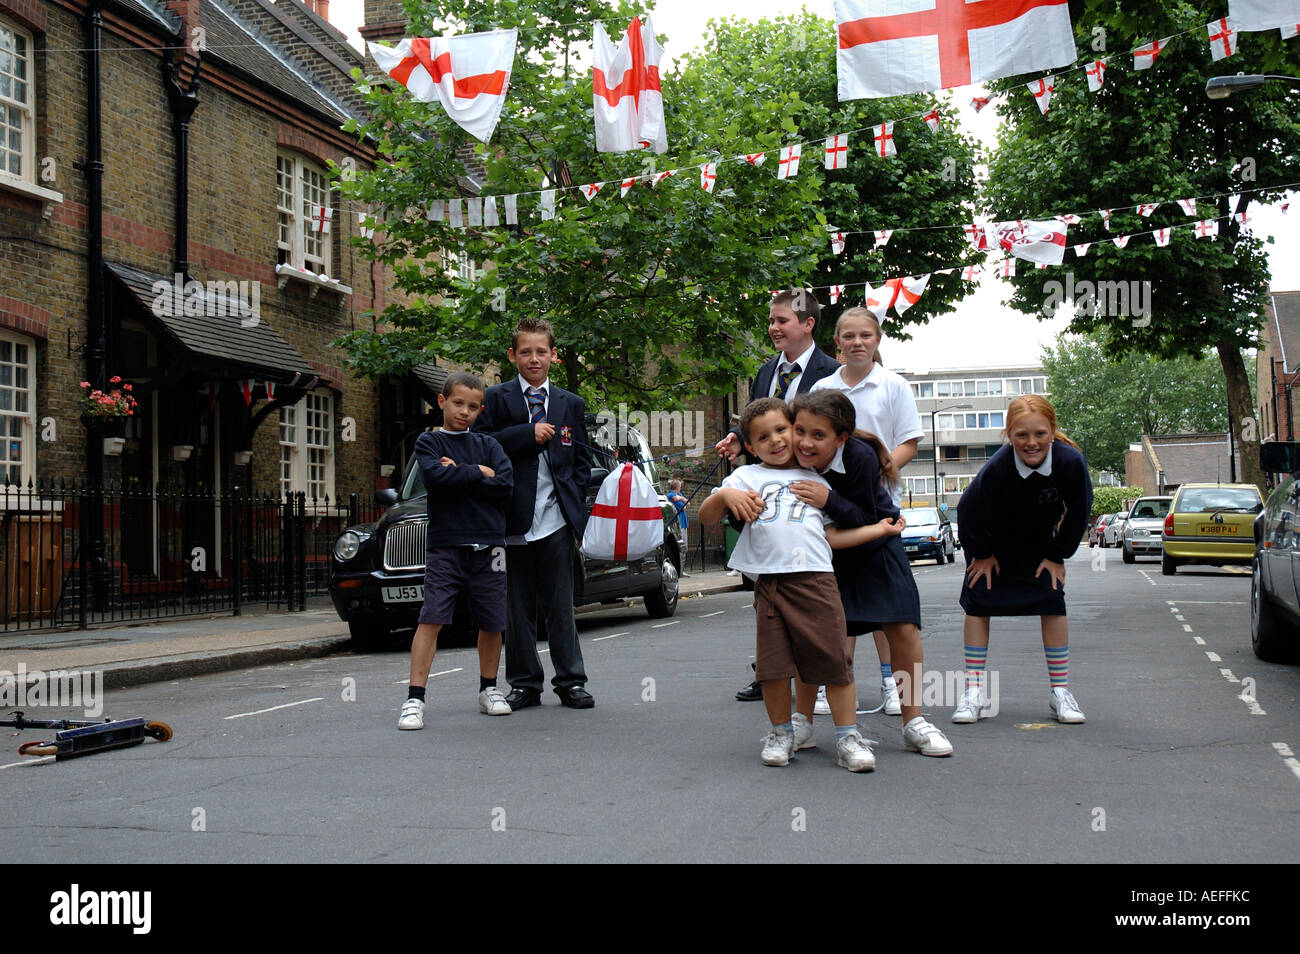 School children of mixed ages on way home from school posing in middle of street at time of World cup final - Stock Image